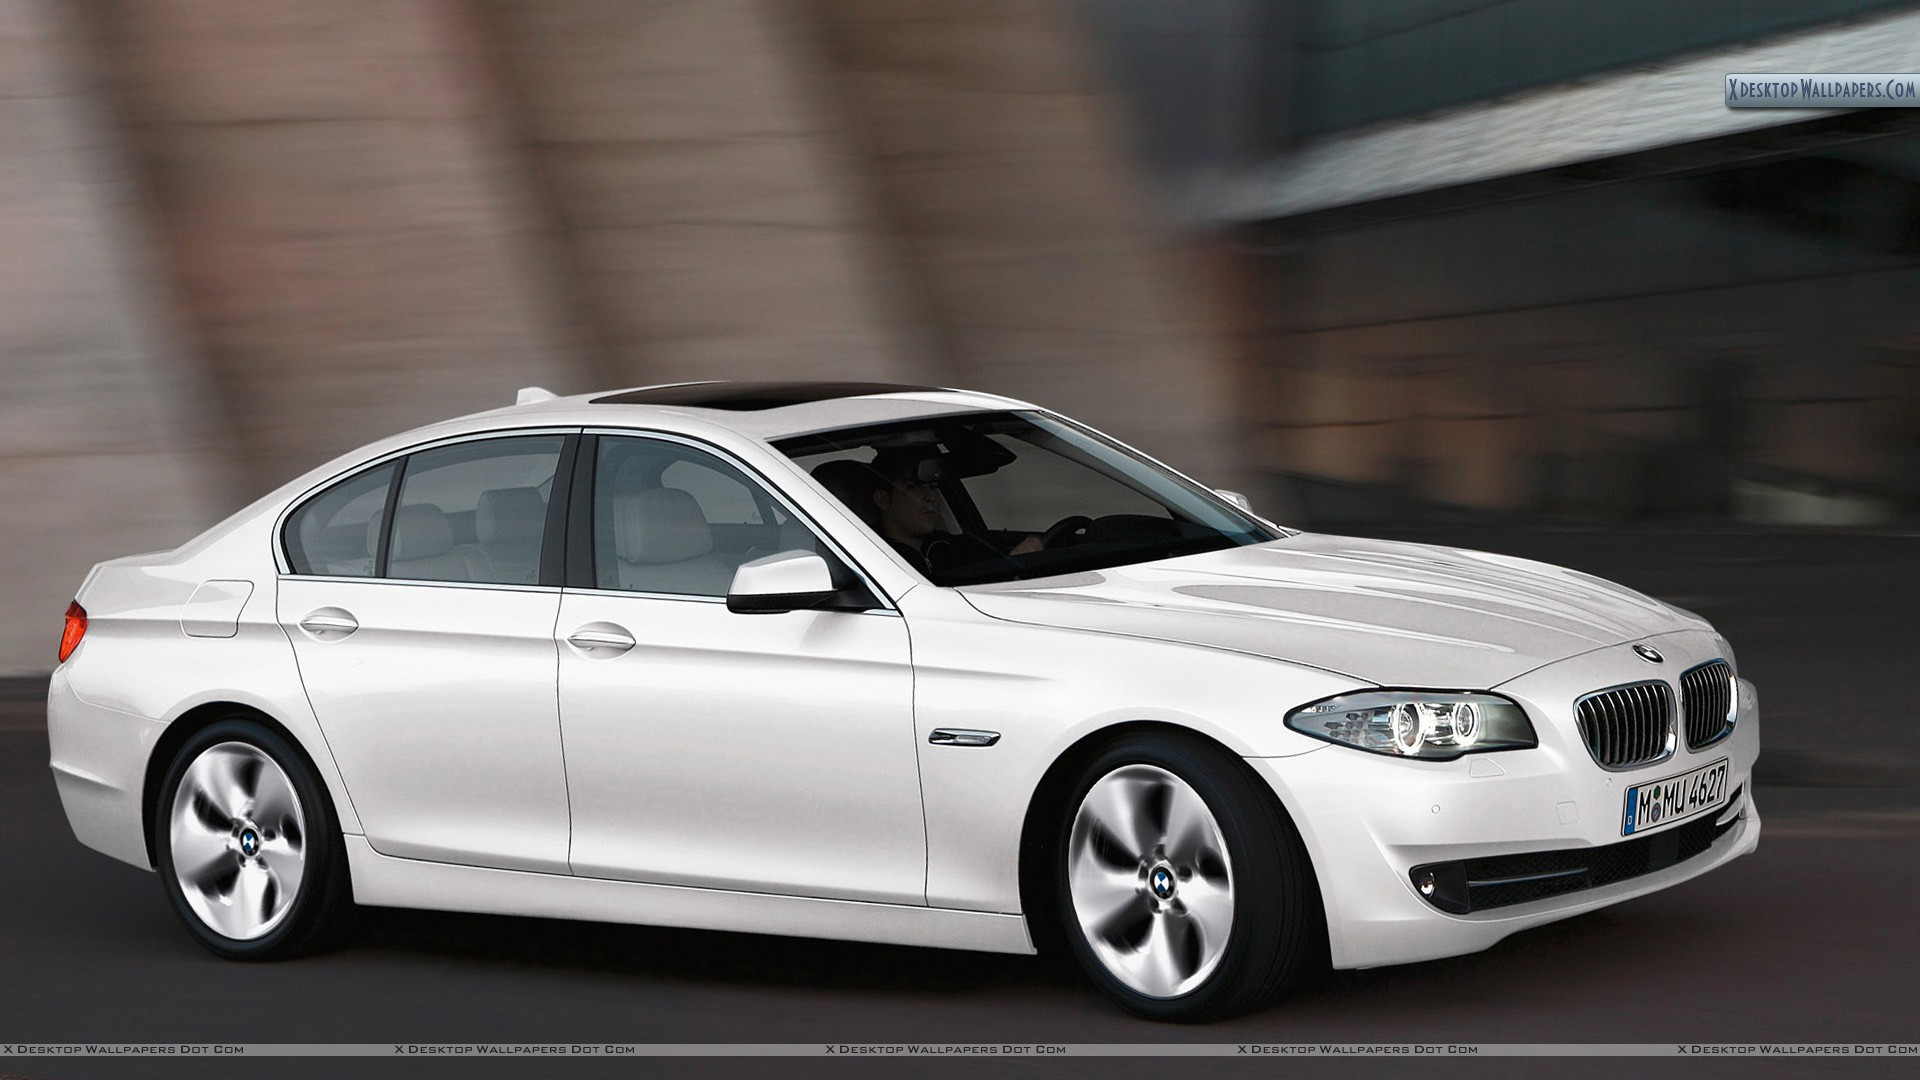 2012 BMW 520D Efficient Dynamics Edition In White Color Wallpaper